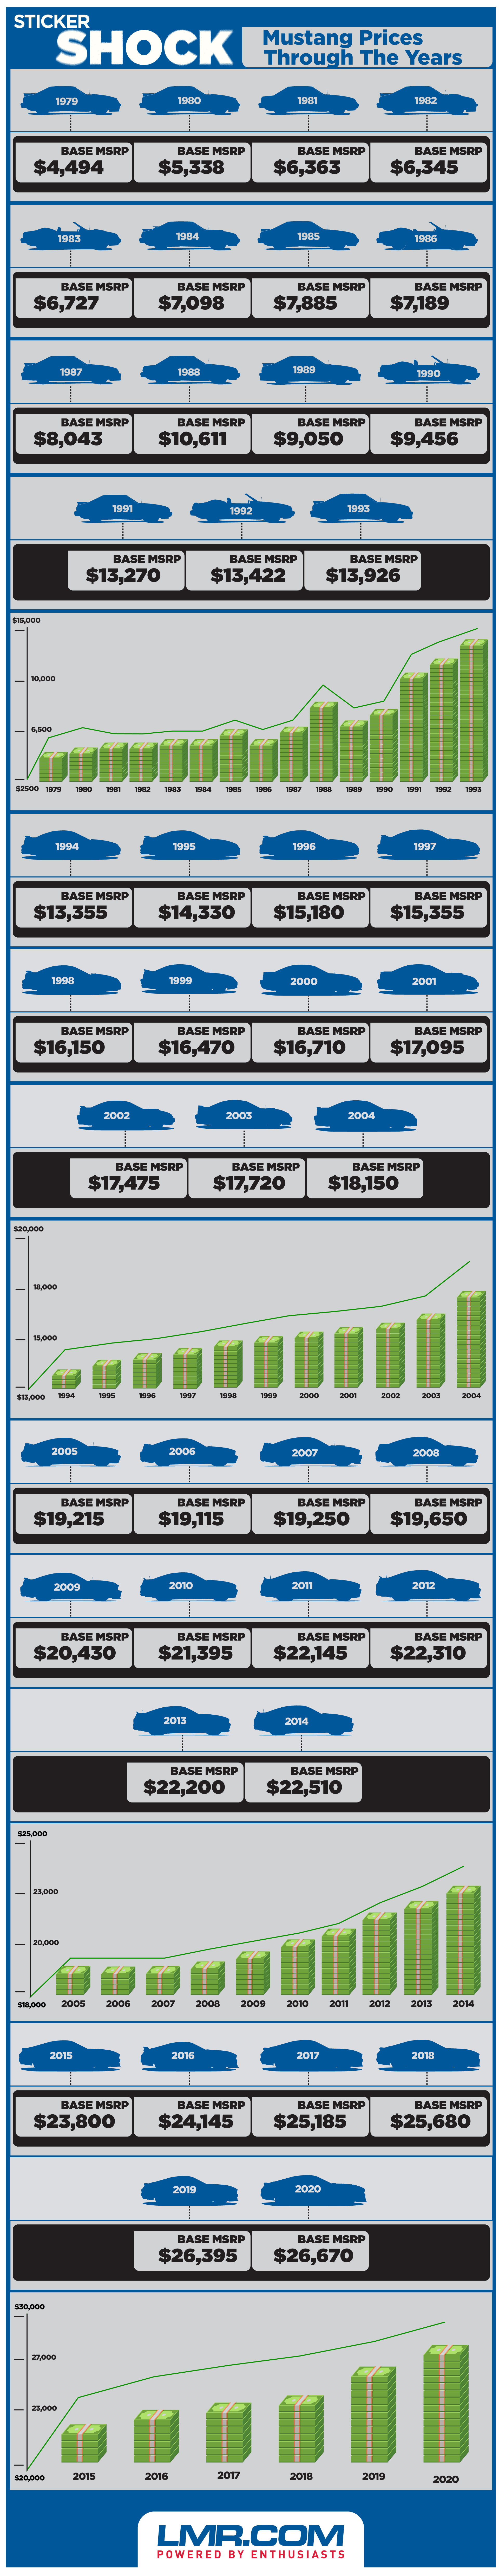 Ford Mustang Prices By The Year - Ford Mustang Prices By The Year